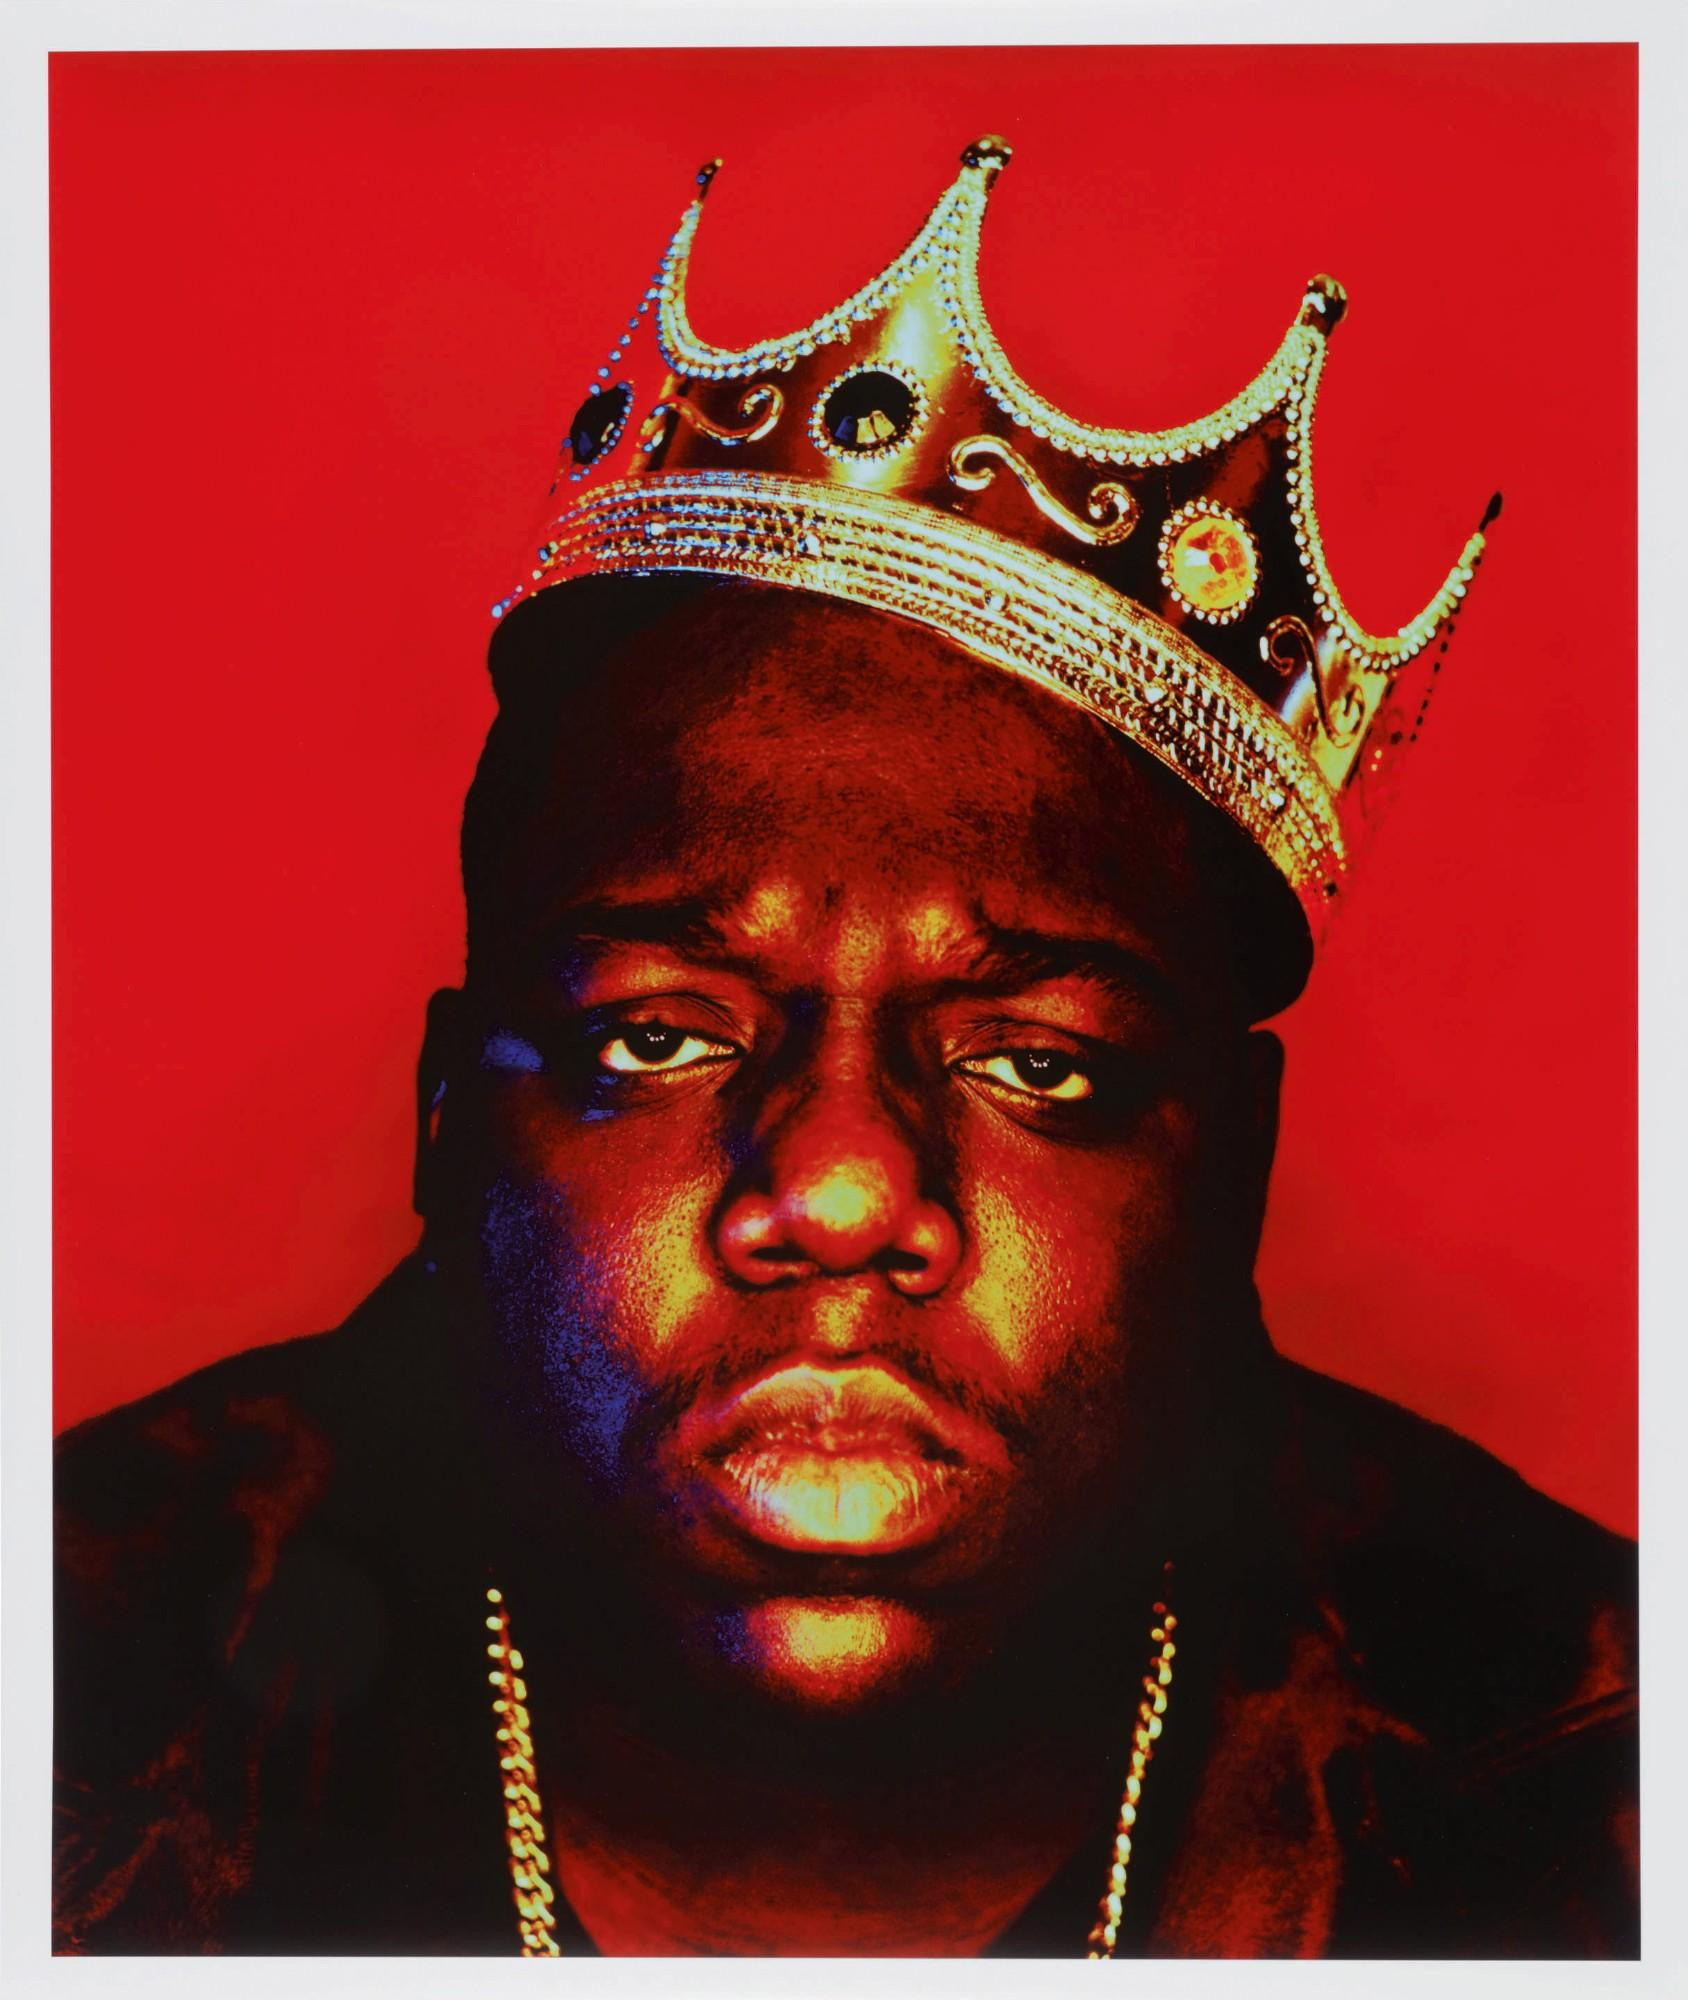 Legendary Biggie Smalls Crown Leads Sotheby S First Ever Hip Hop Auction Art Object The group included lil' cease, mc klepto, banger, nino brown, lil' kim, chico del vec, blake c, capone, and bugsy all during different incarnations. legendary biggie smalls crown leads